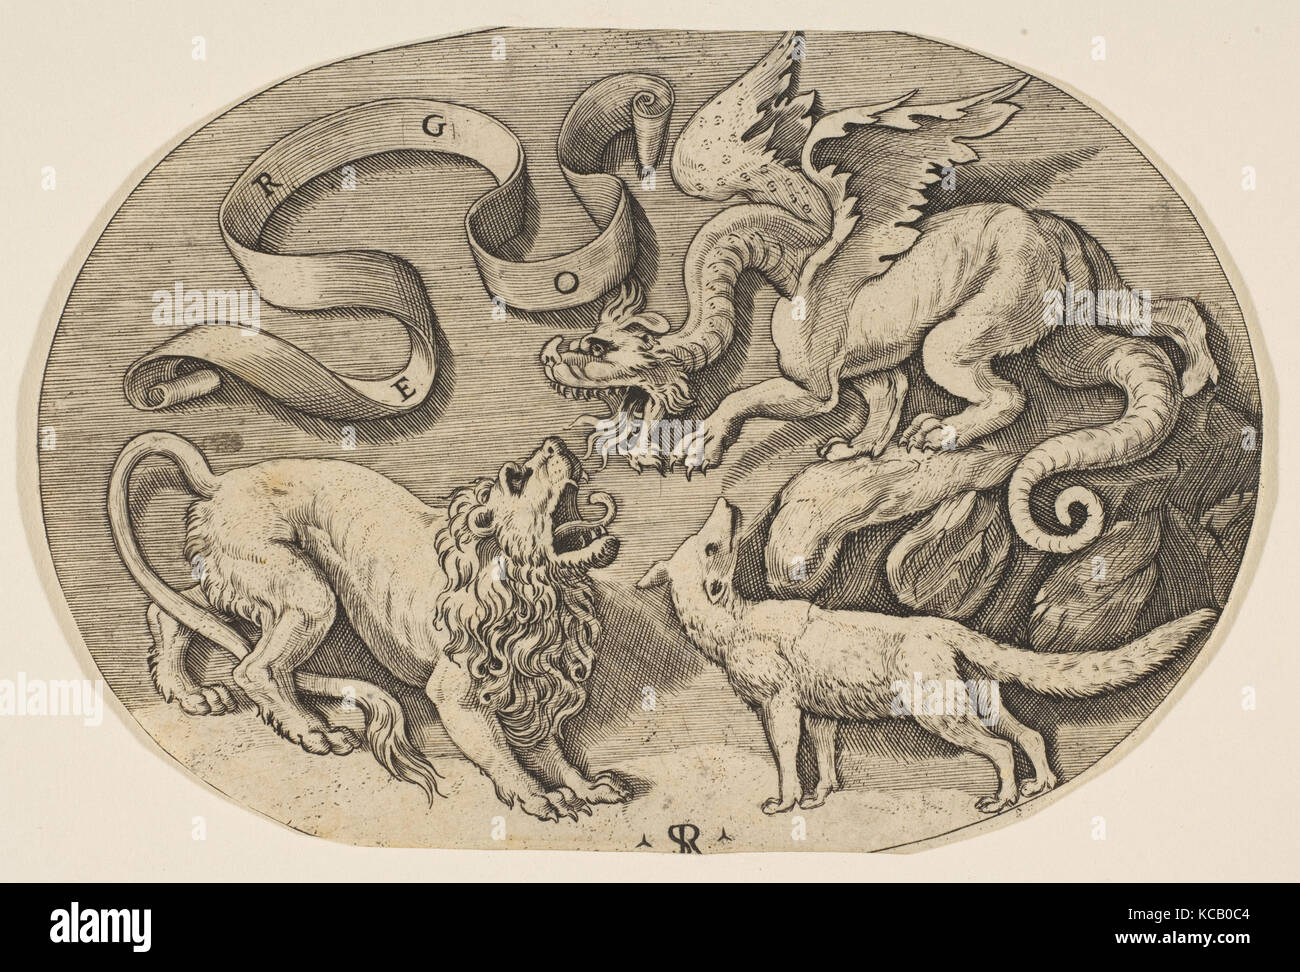 How to breed heraldic dragon - A Lion Dragon And Fox Fighting Each Other An Inscribed Banderole Above An